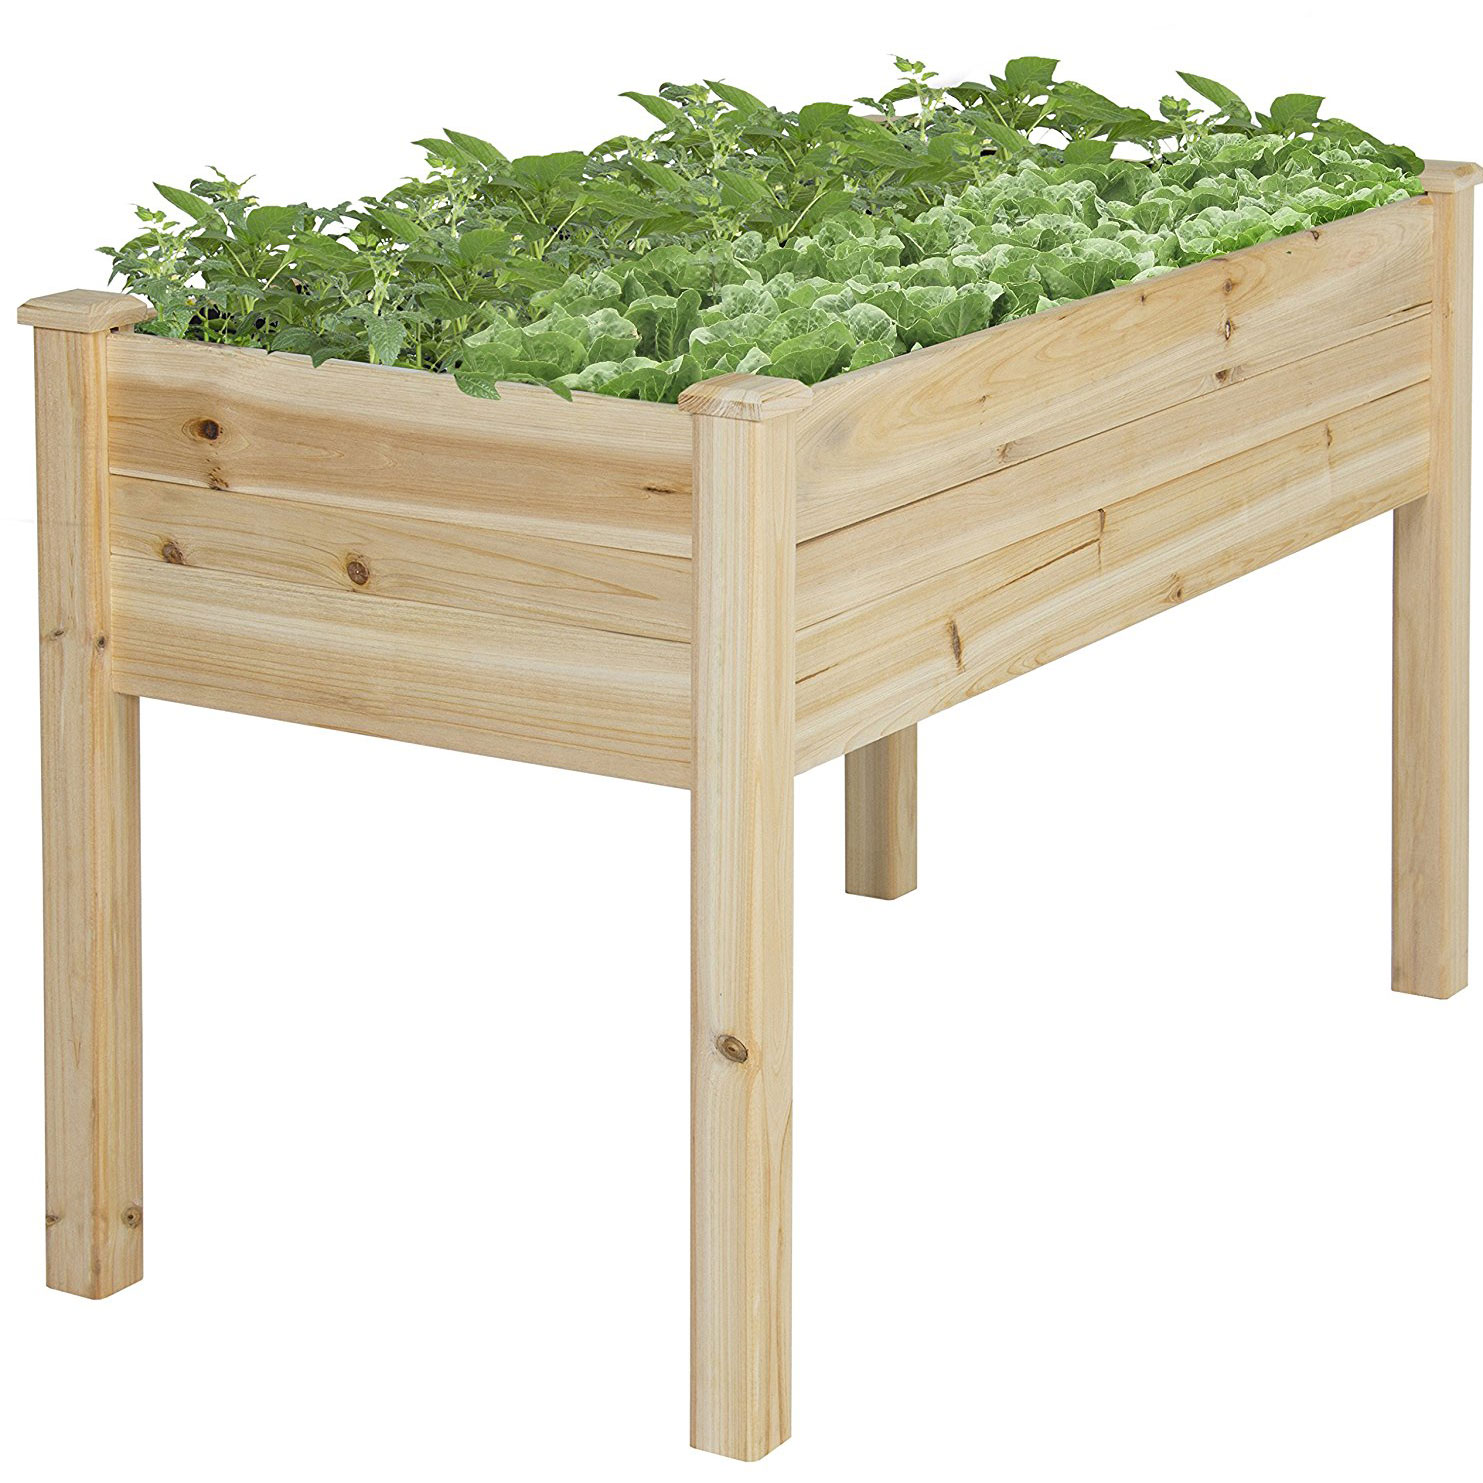 Raised Bed Gardening kit from amazon.com